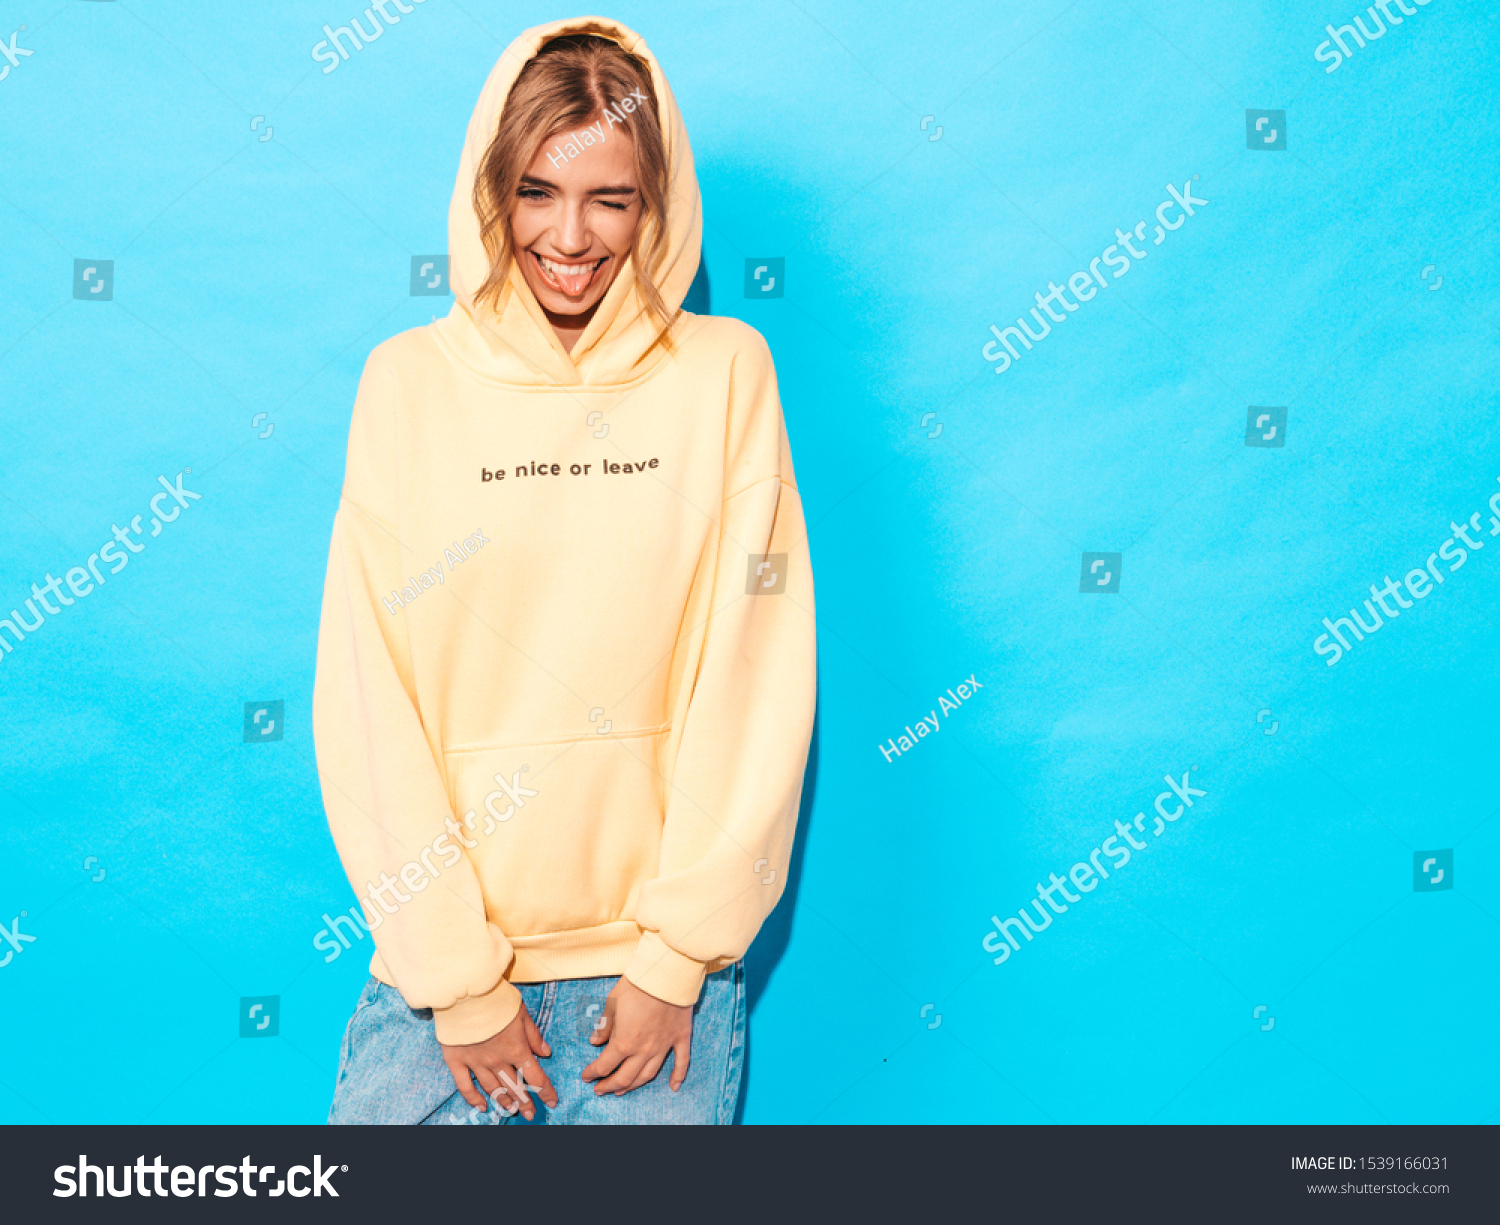 Portrait of young beautiful smiling girl in trendy summer hipster yellow hoodie.Sexy carefree woman posing near blue wall. Positive model having fun.Winks and shows tongue #1539166031